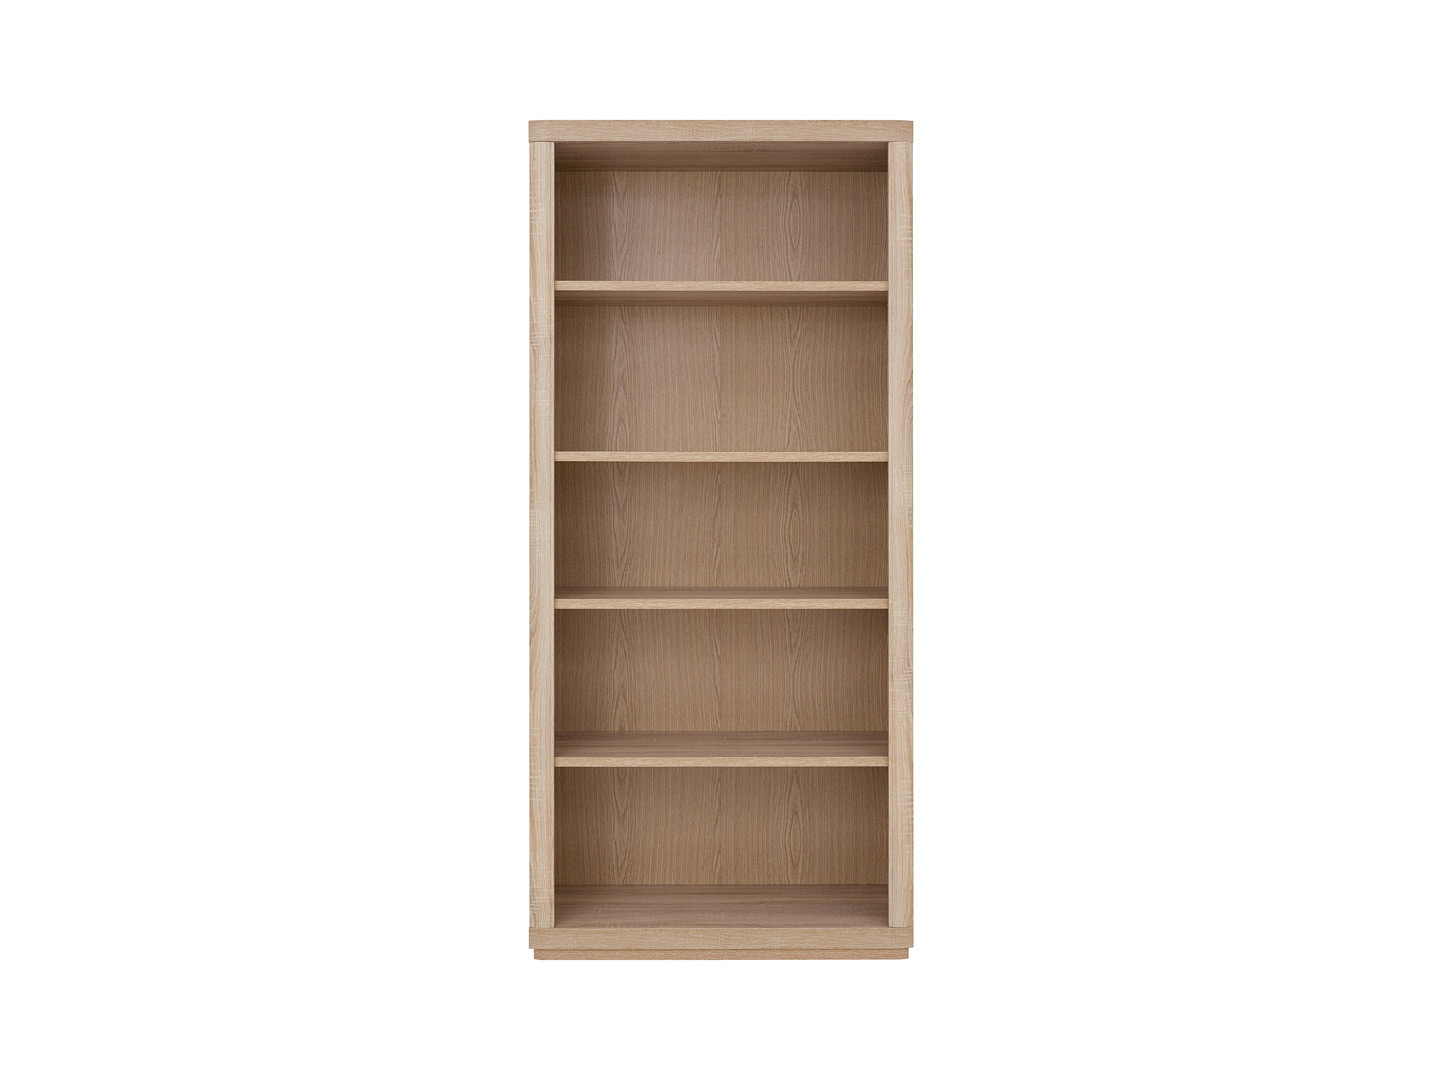 data/Oregon/OREGON BOOKCASE_a.jpg